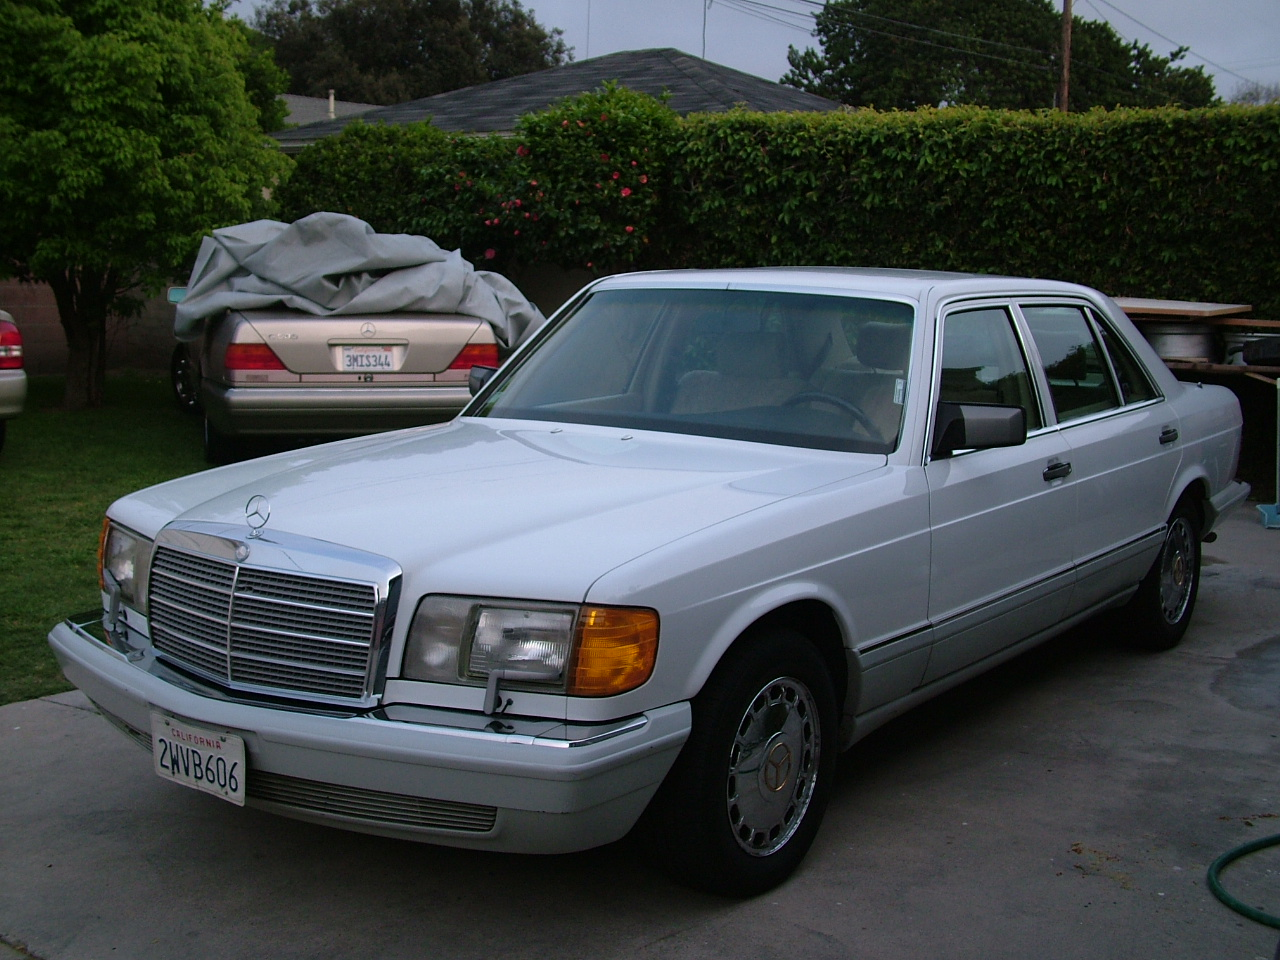 1991 mercedes benz 420 class pictures cargurus for 1991 mercedes benz 420sel